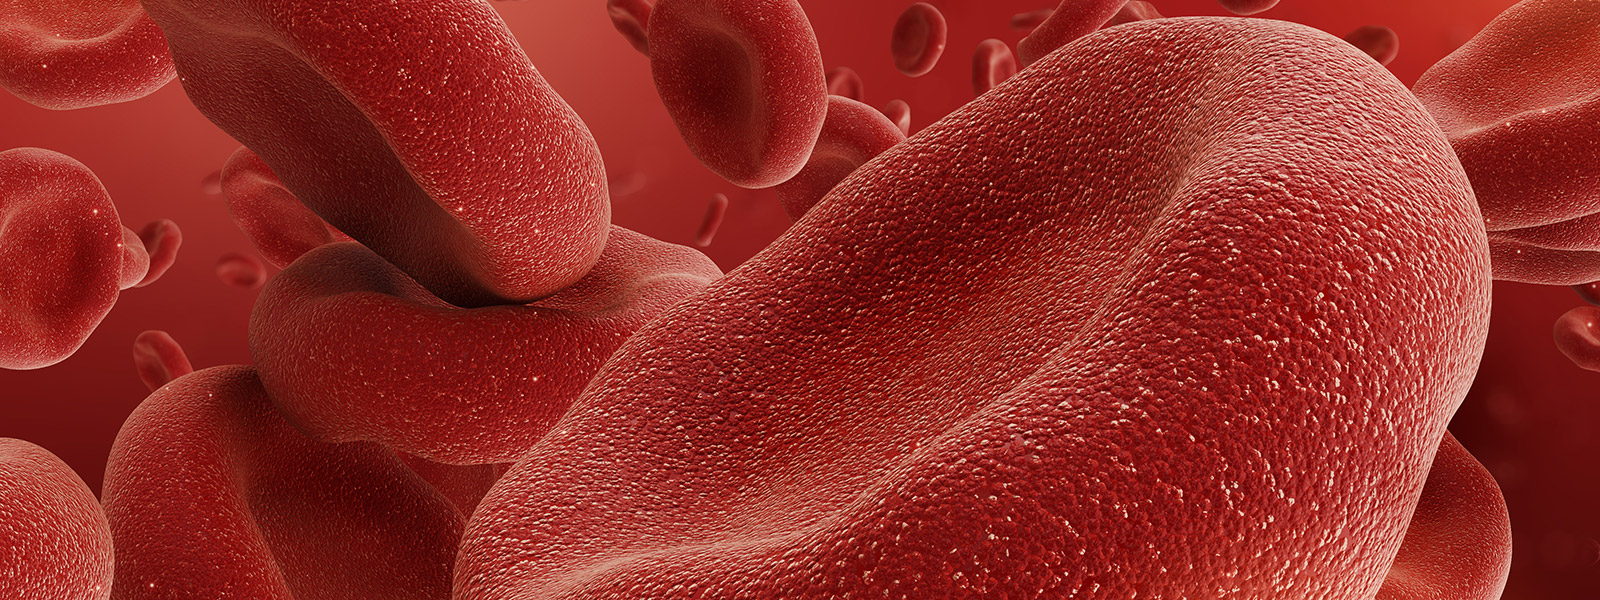 group of red blood cells